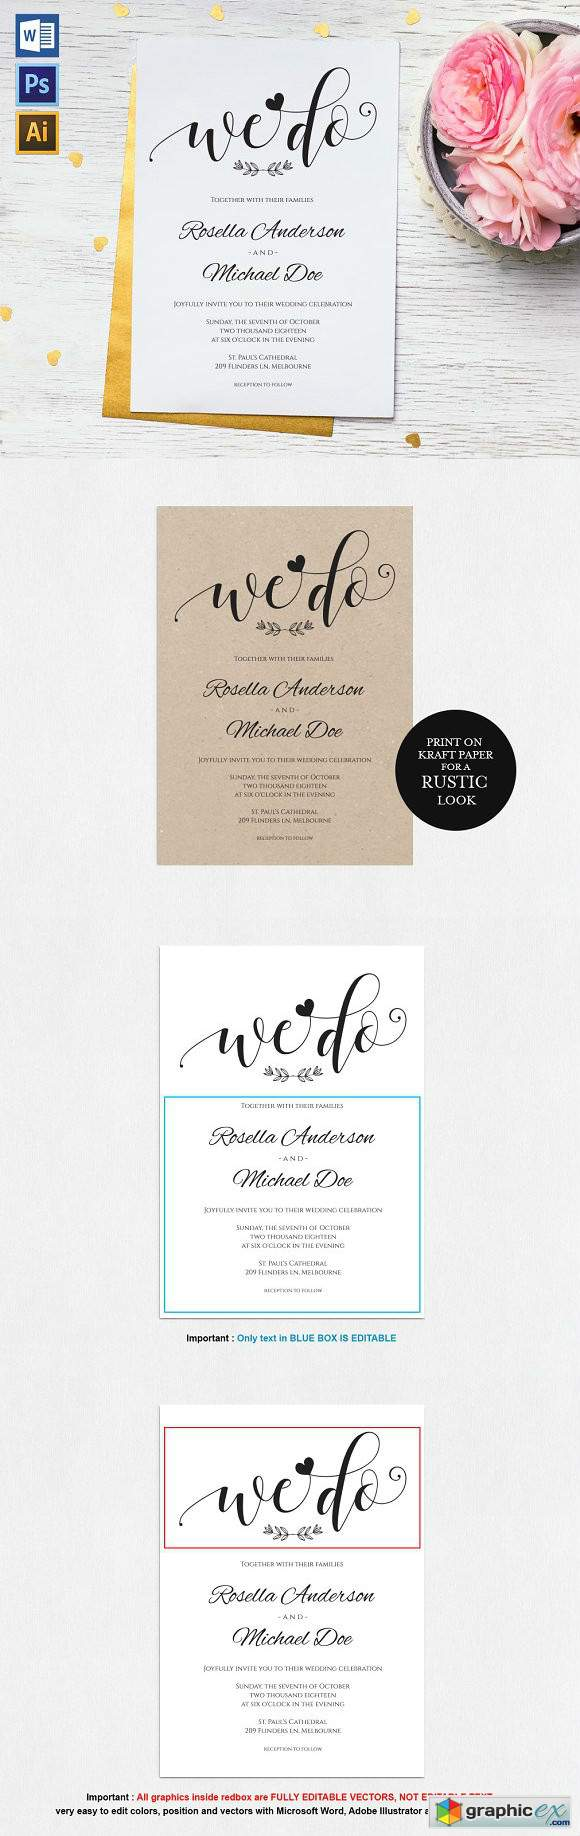 Adobe Stock Wedding Invitations